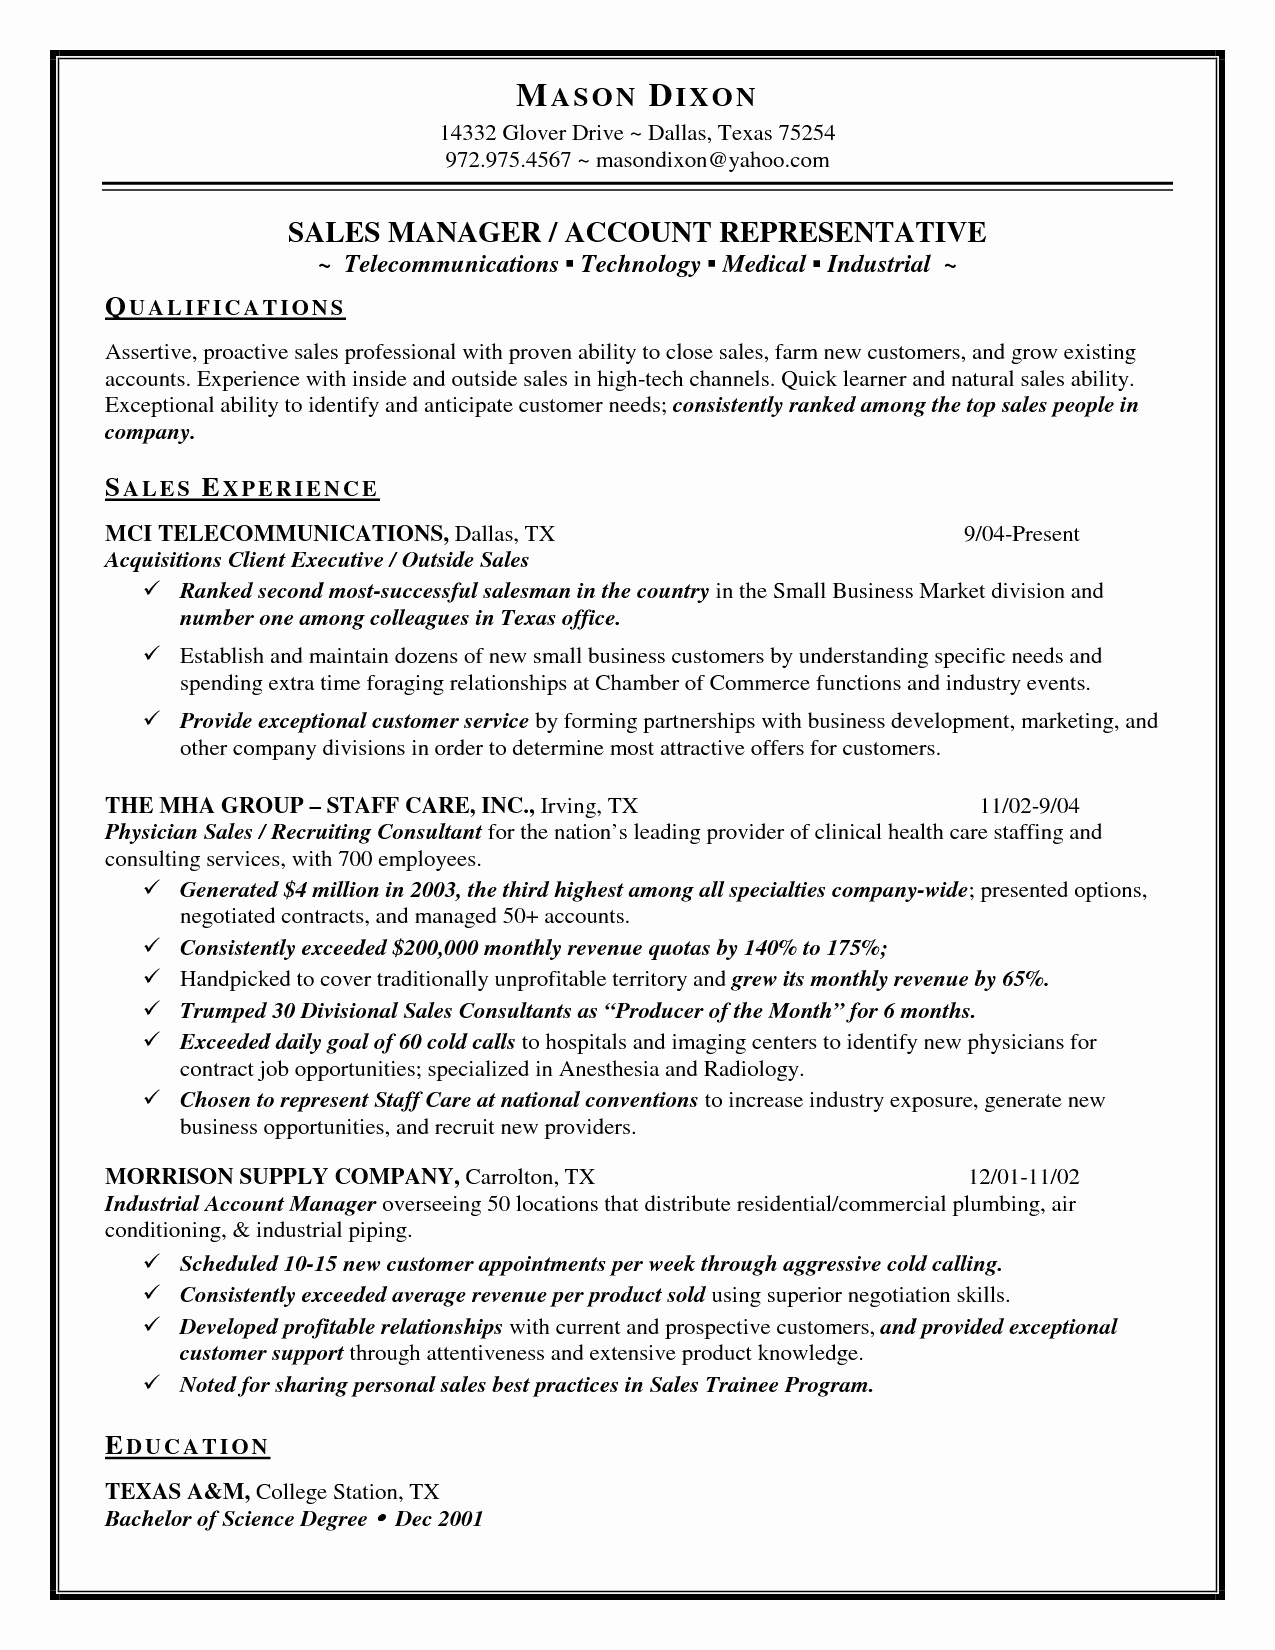 Sales Manager Resume - Retail Sales Manager Resumes Lovely Grocery Store Manager Resume